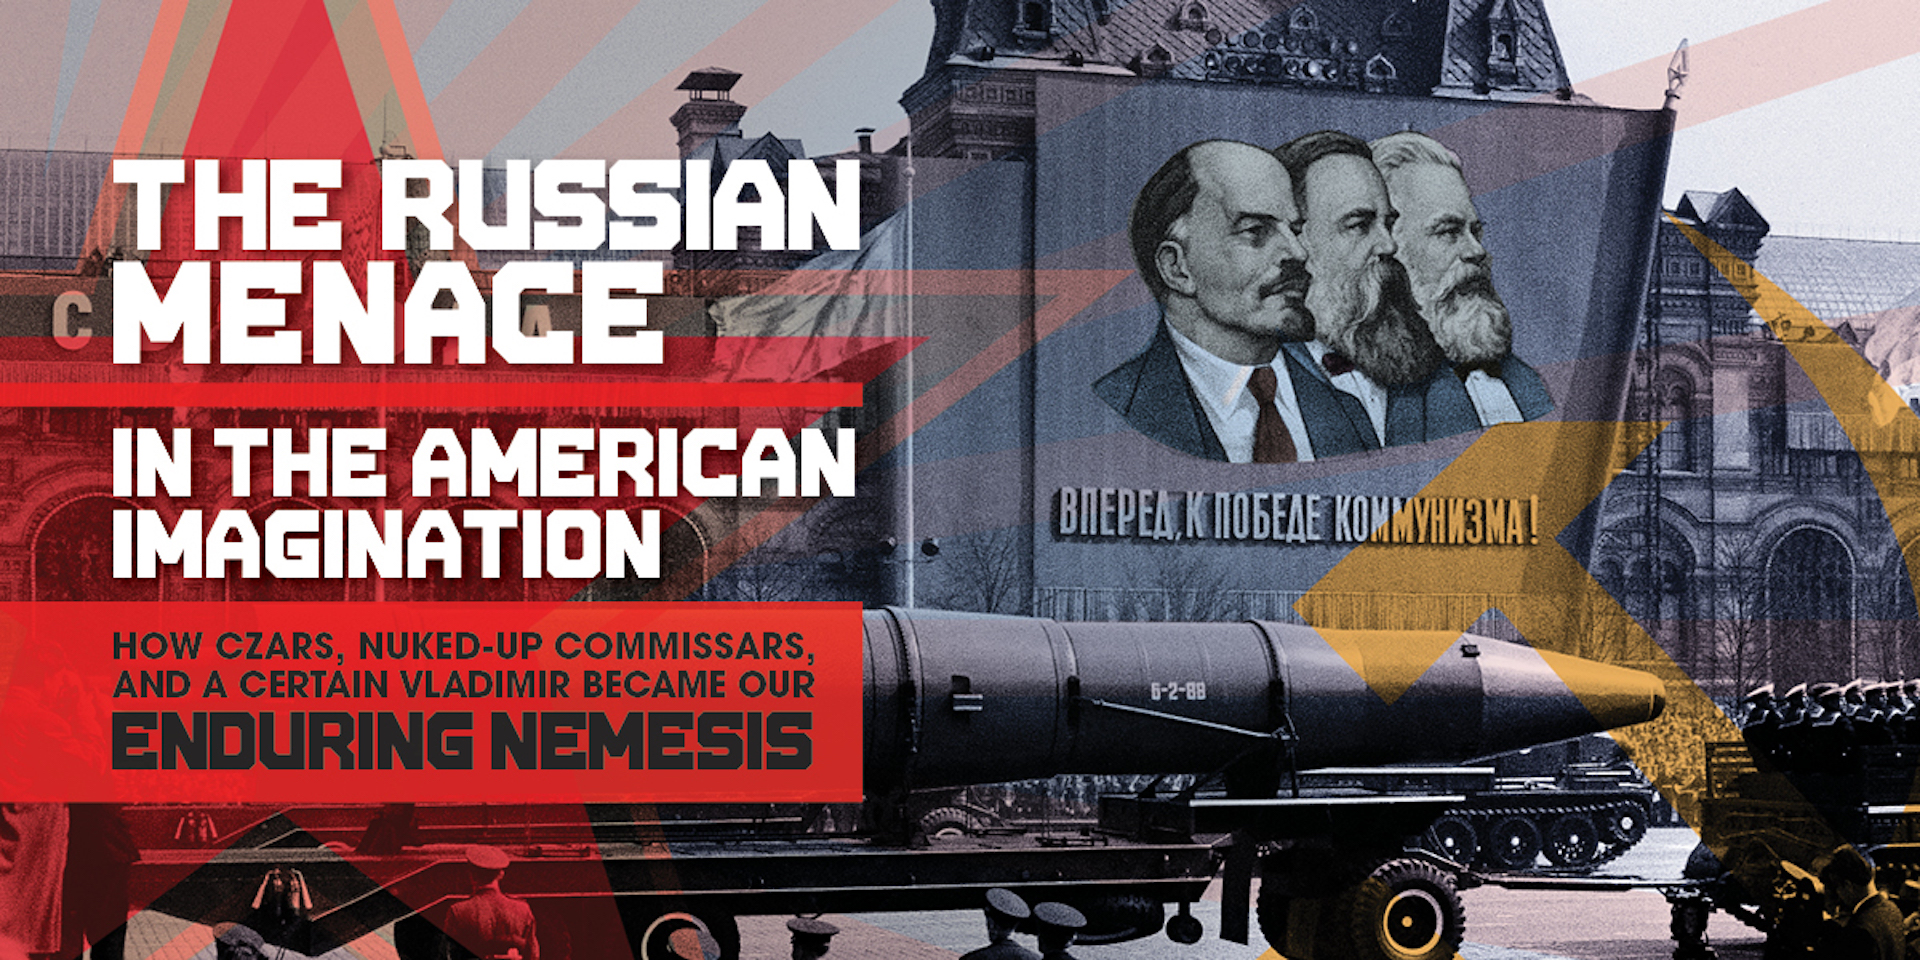 The Russian Menace in the American Imagination